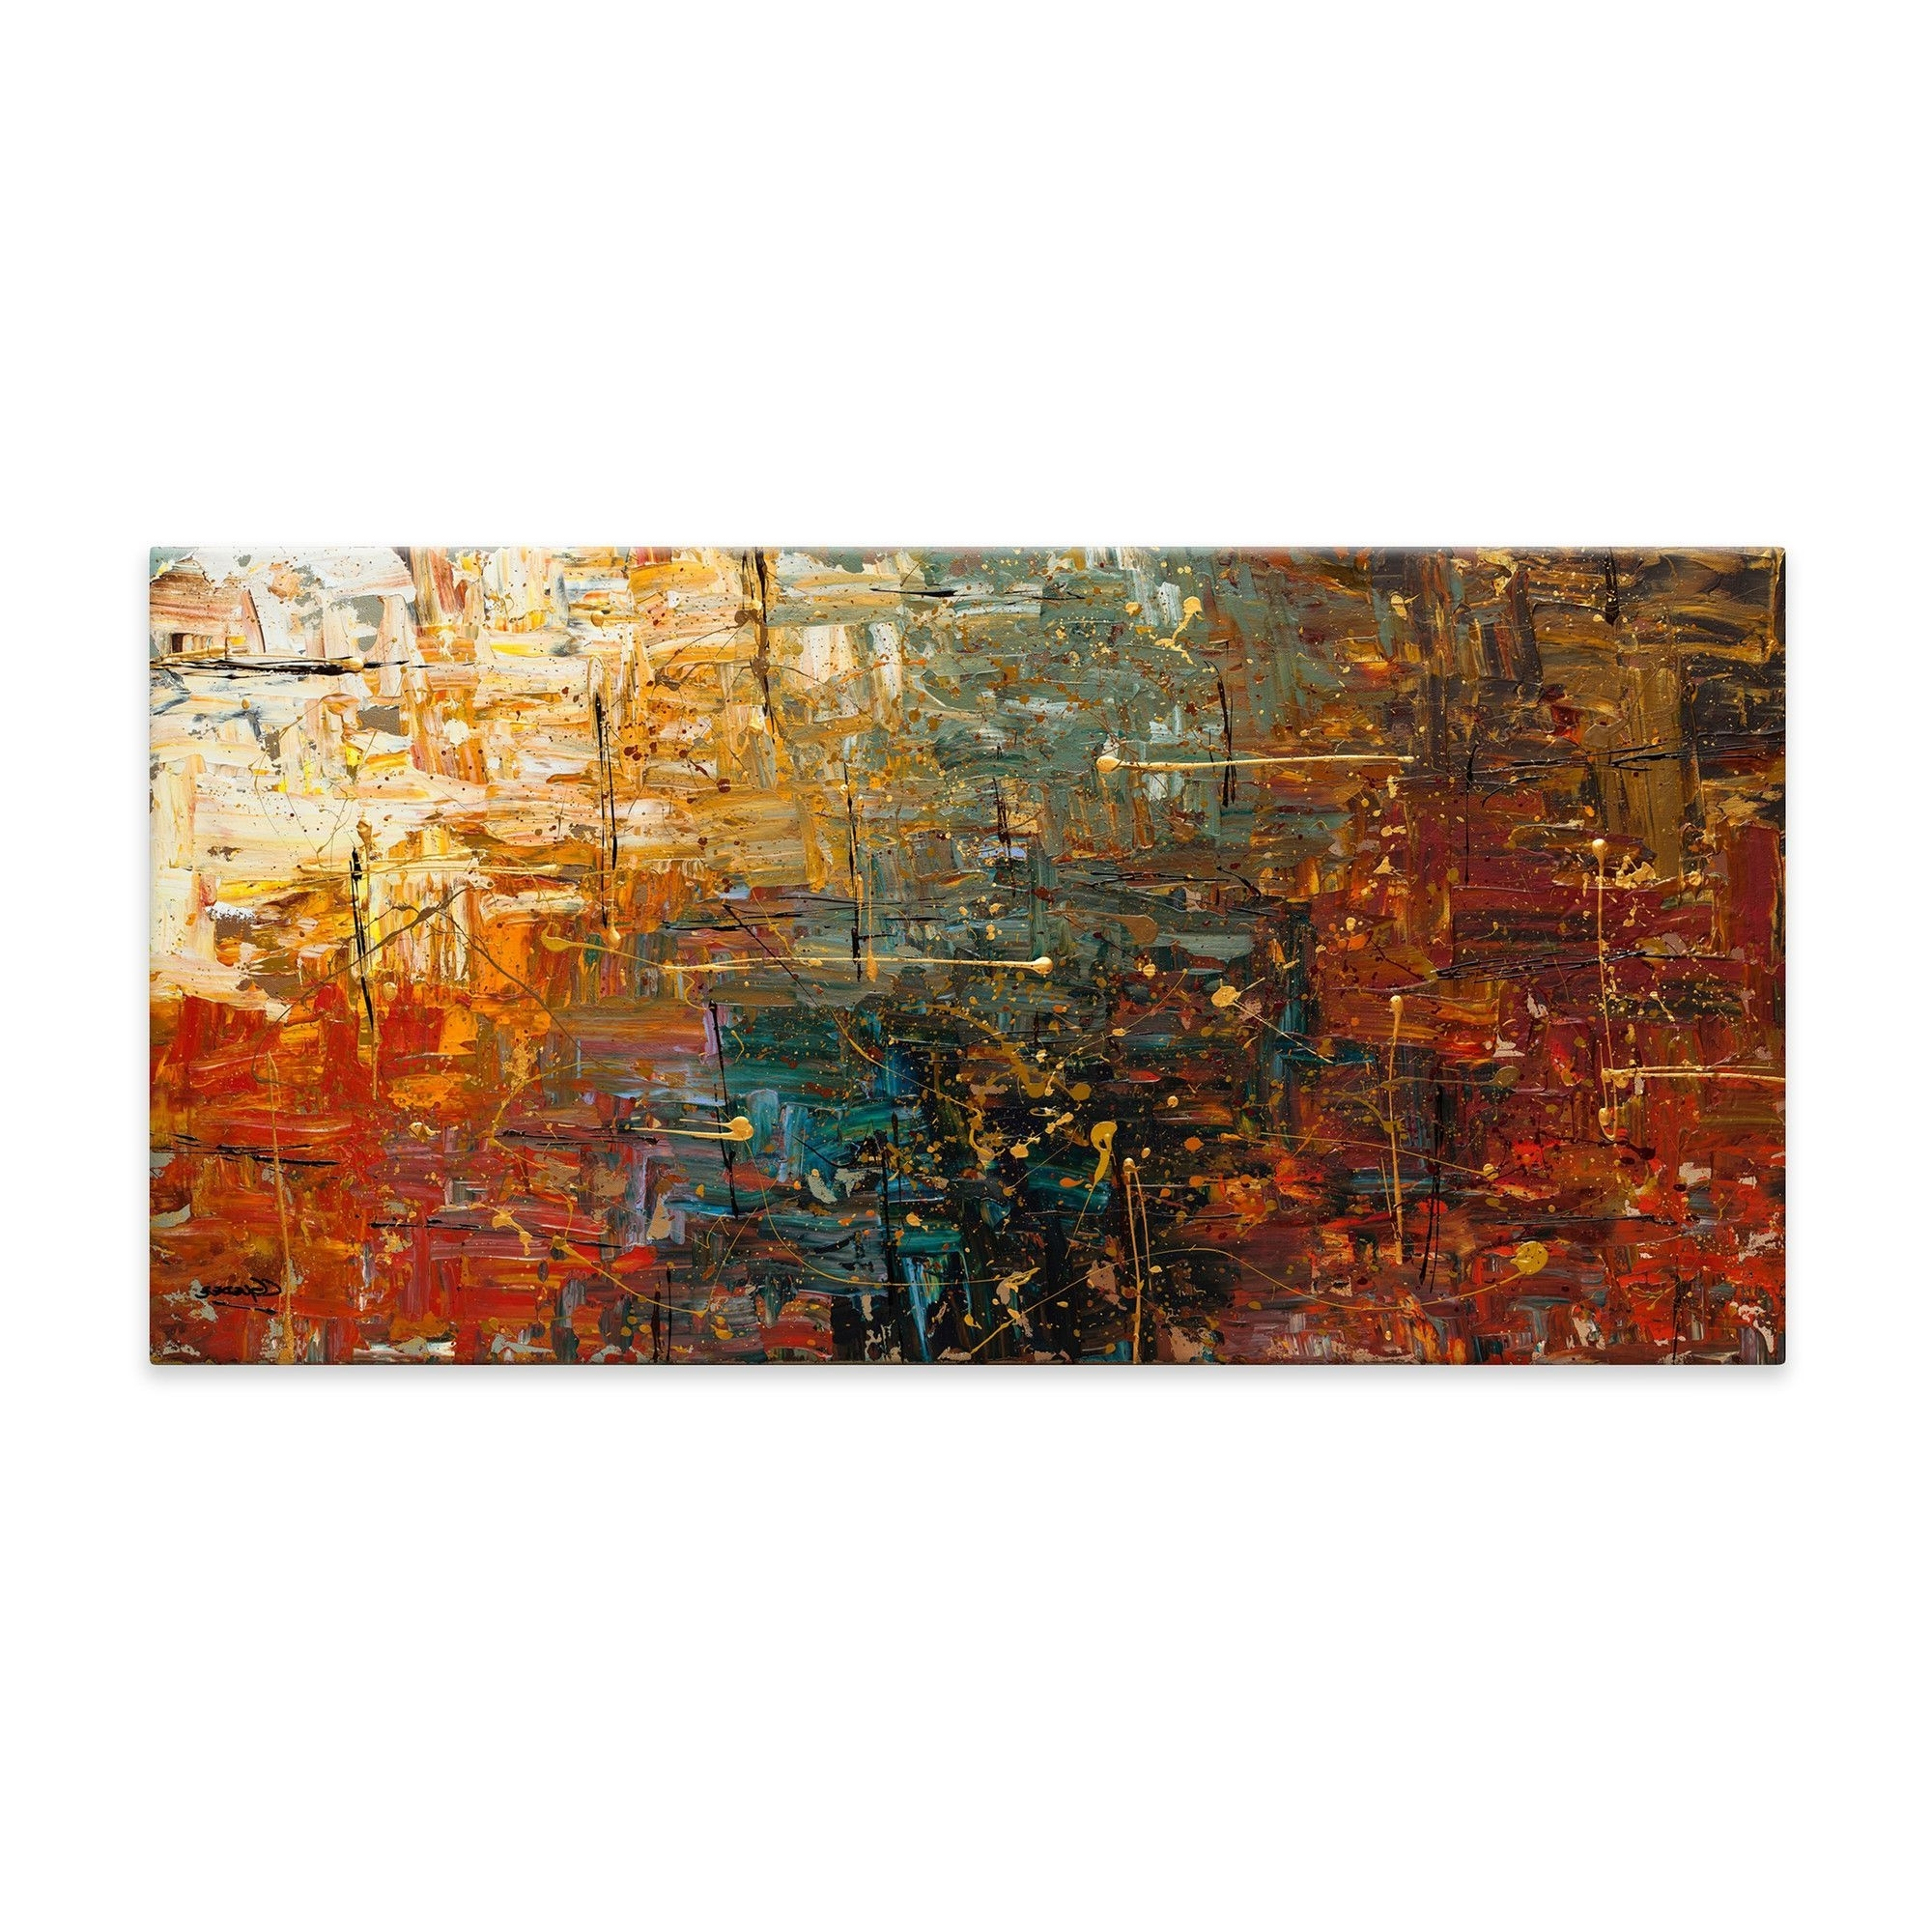 Canvas Wall Art Pairs In Trendy Gold Splashcarmen Guedez Painting Print On Canvas (View 1 of 15)